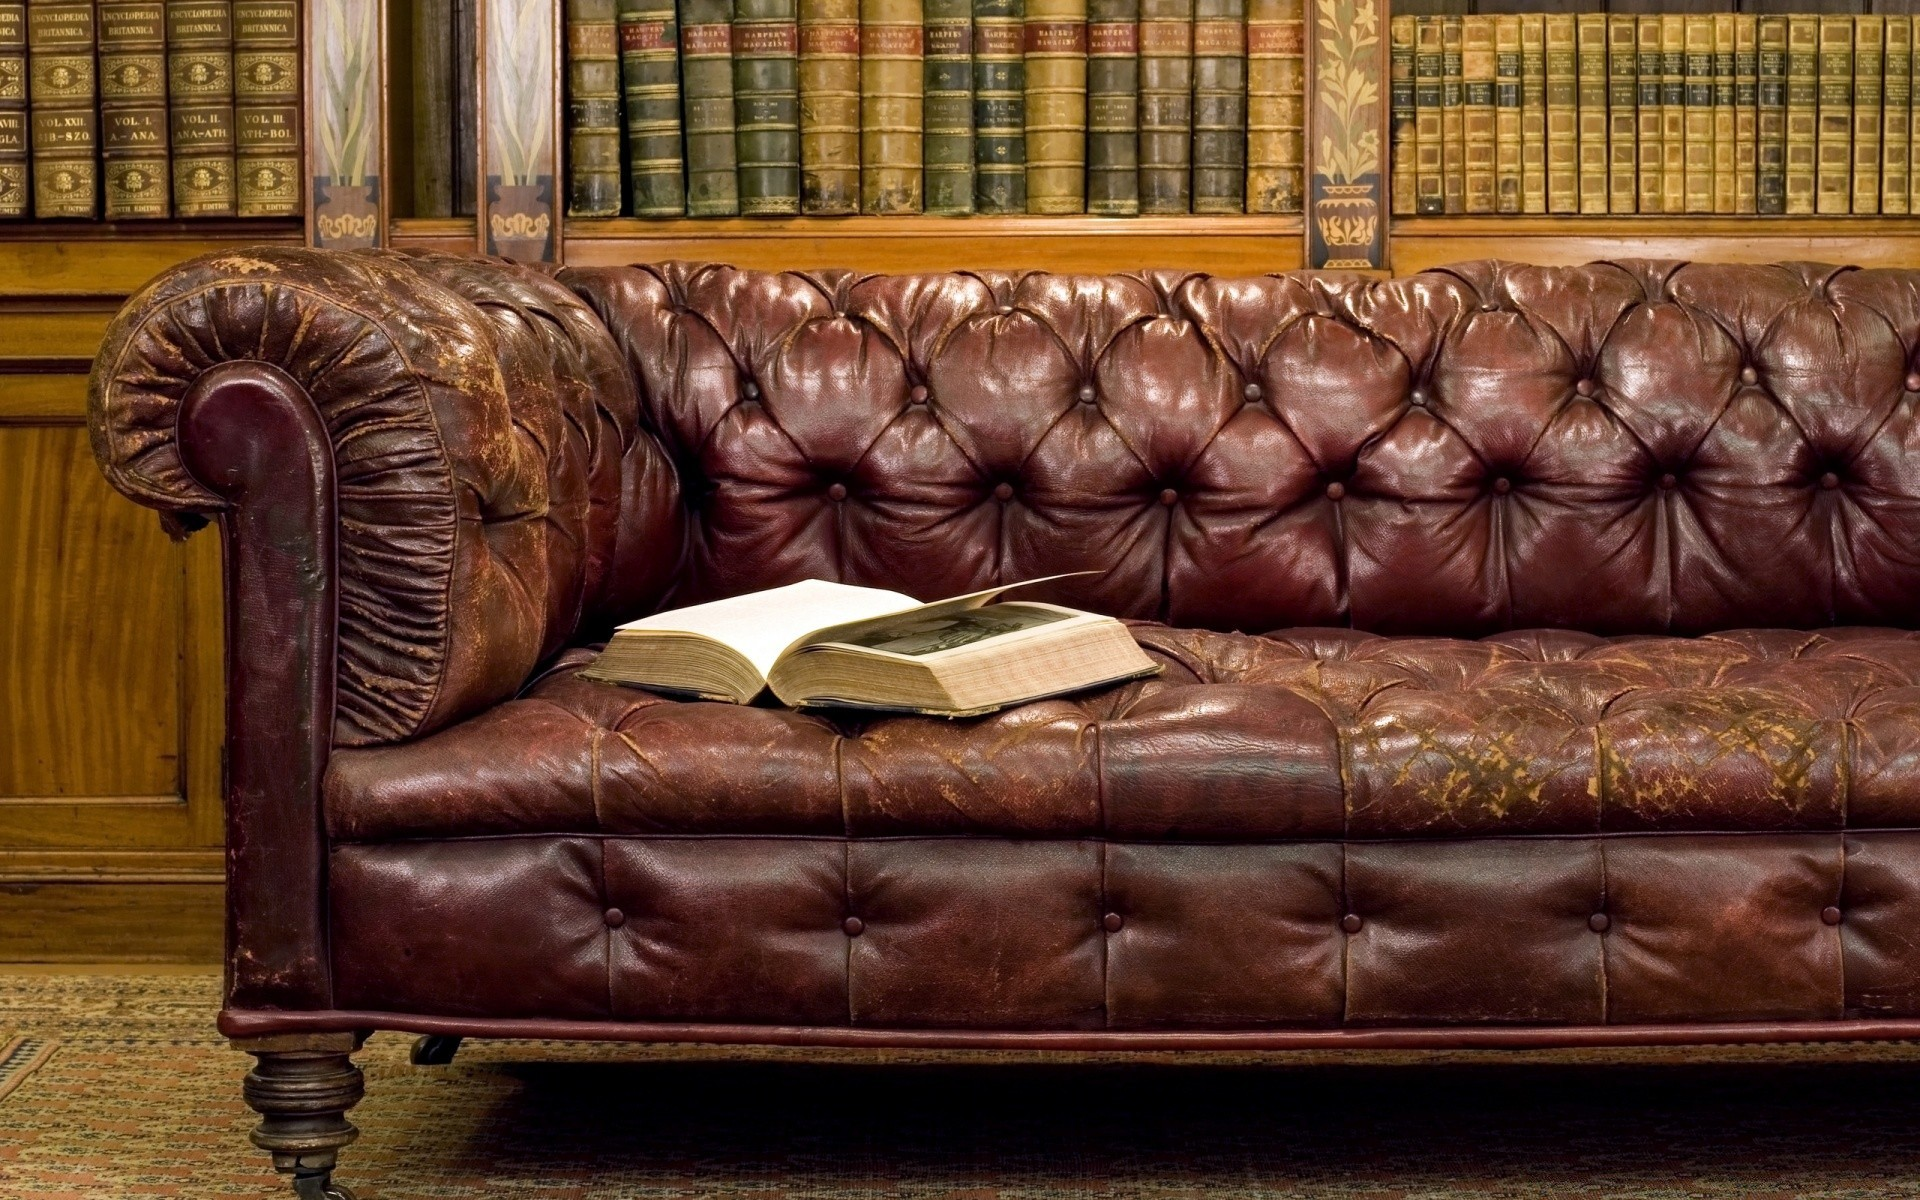 house and comfort furniture sofa seat upholstery leather room luxury armchair cushion chair interior design settee inside indoors wood house interior family comfort